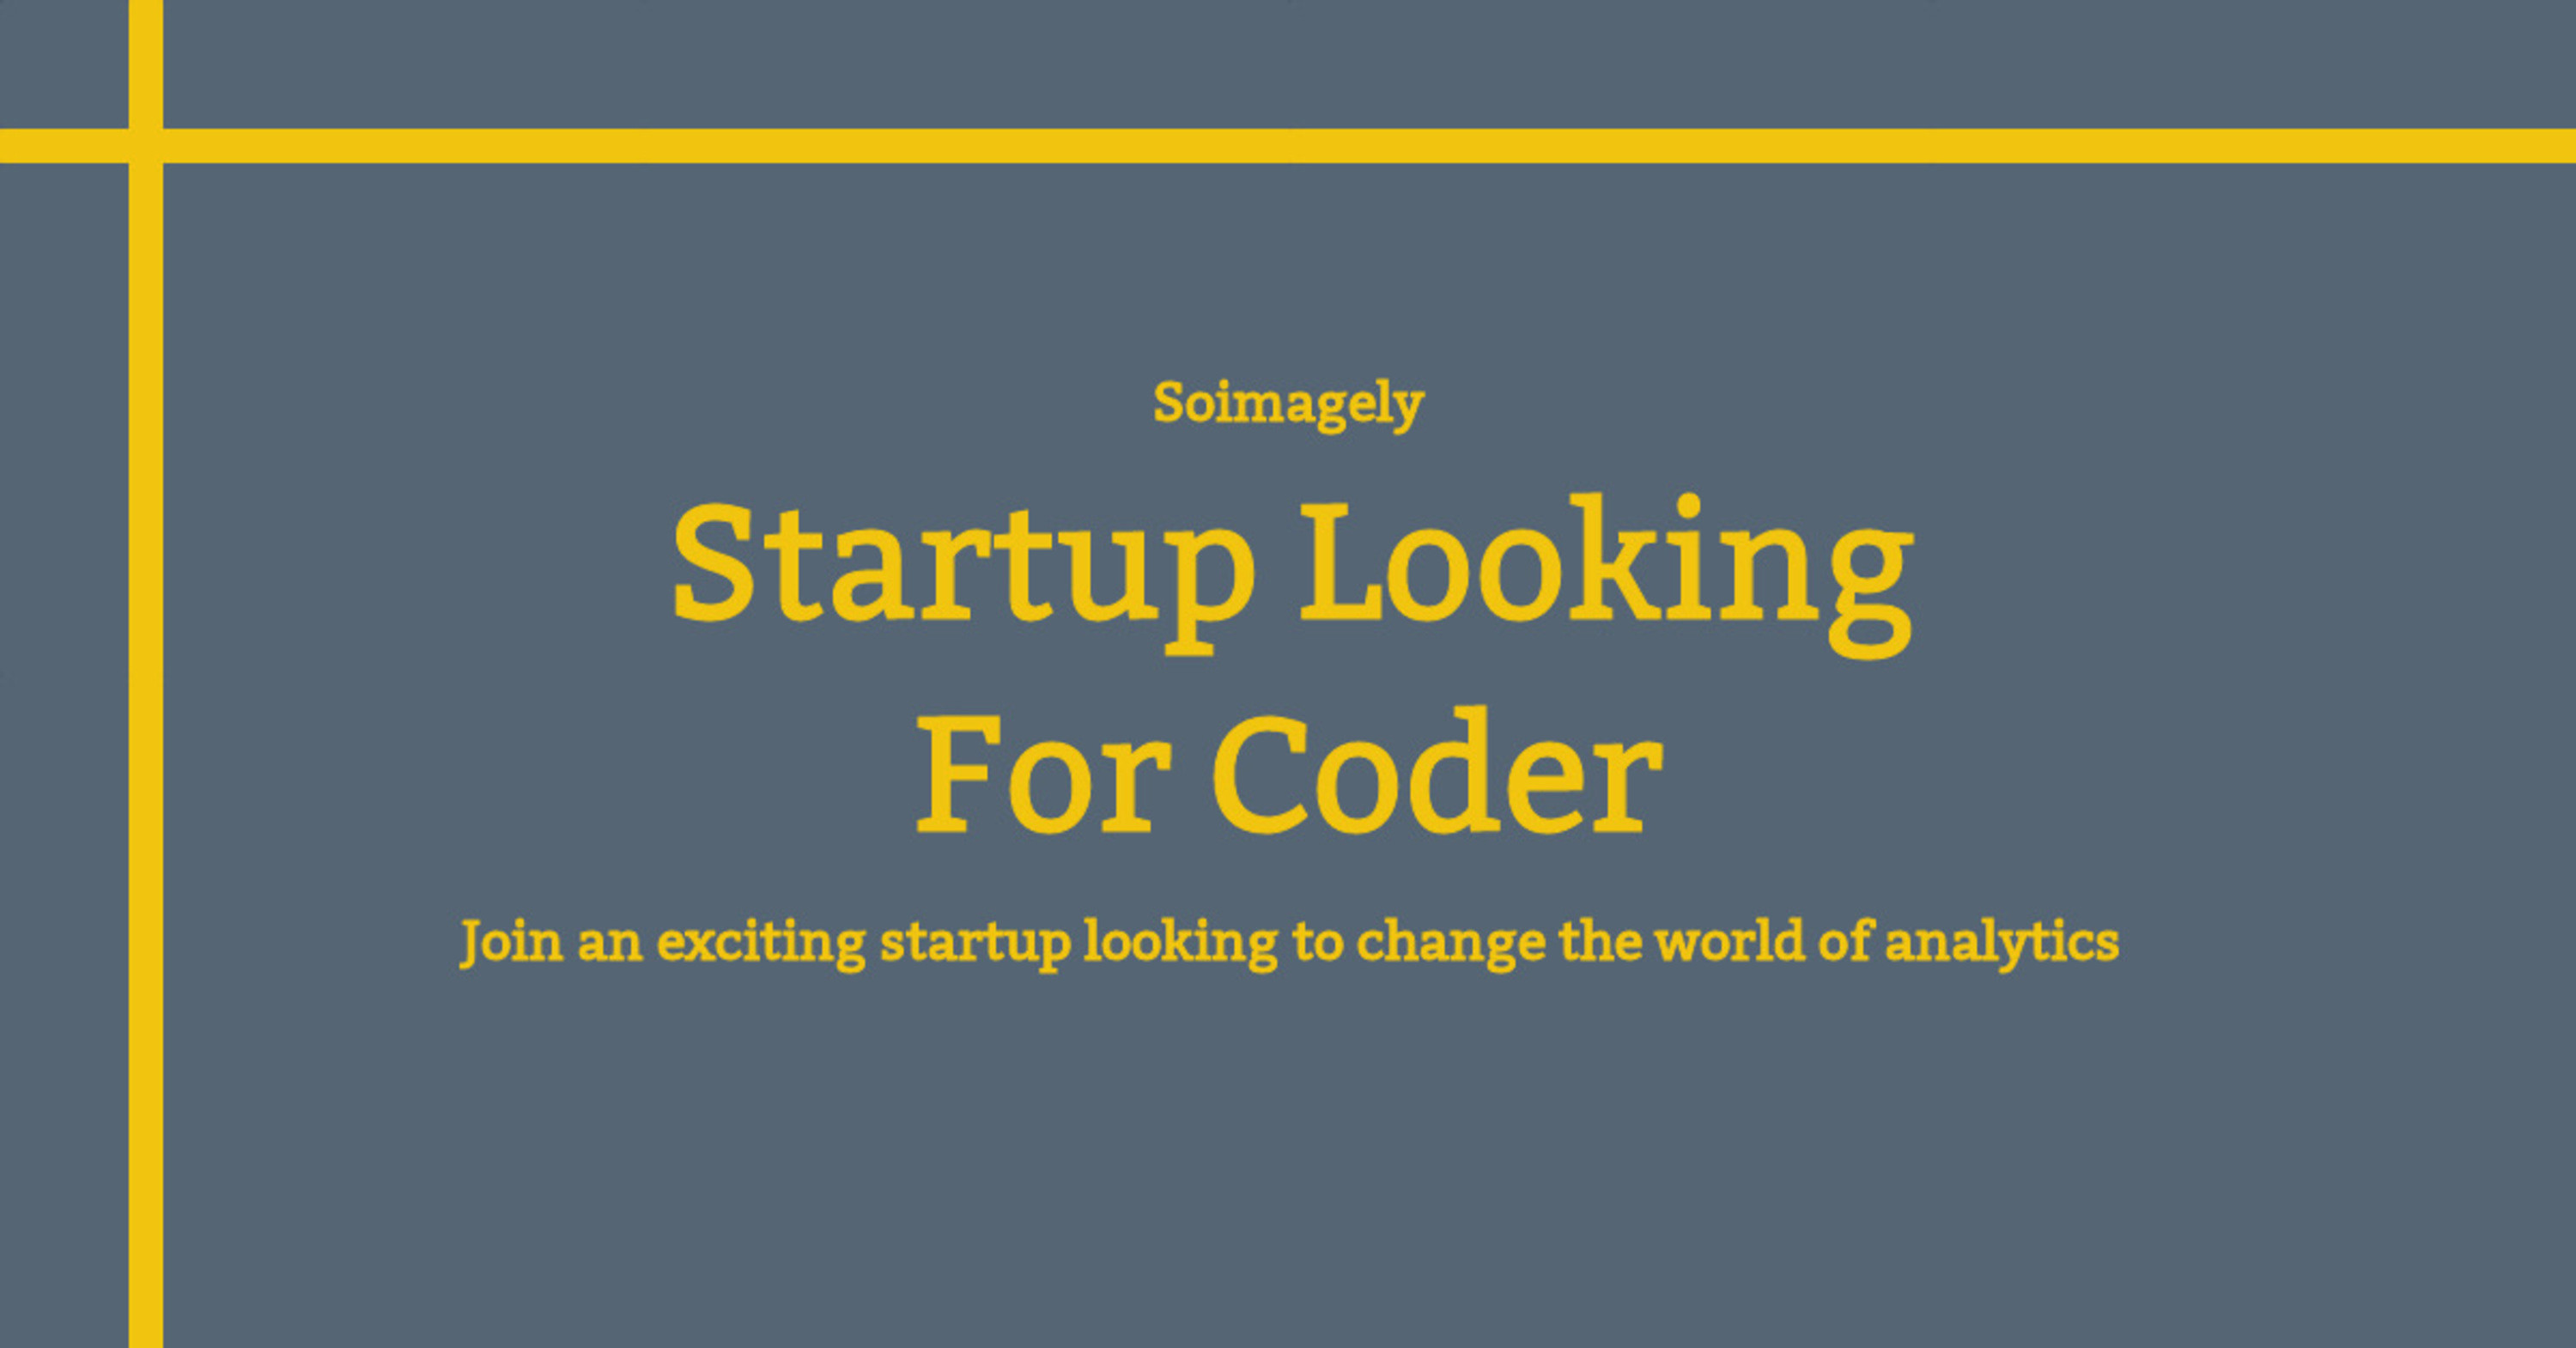 Startup looking for coder